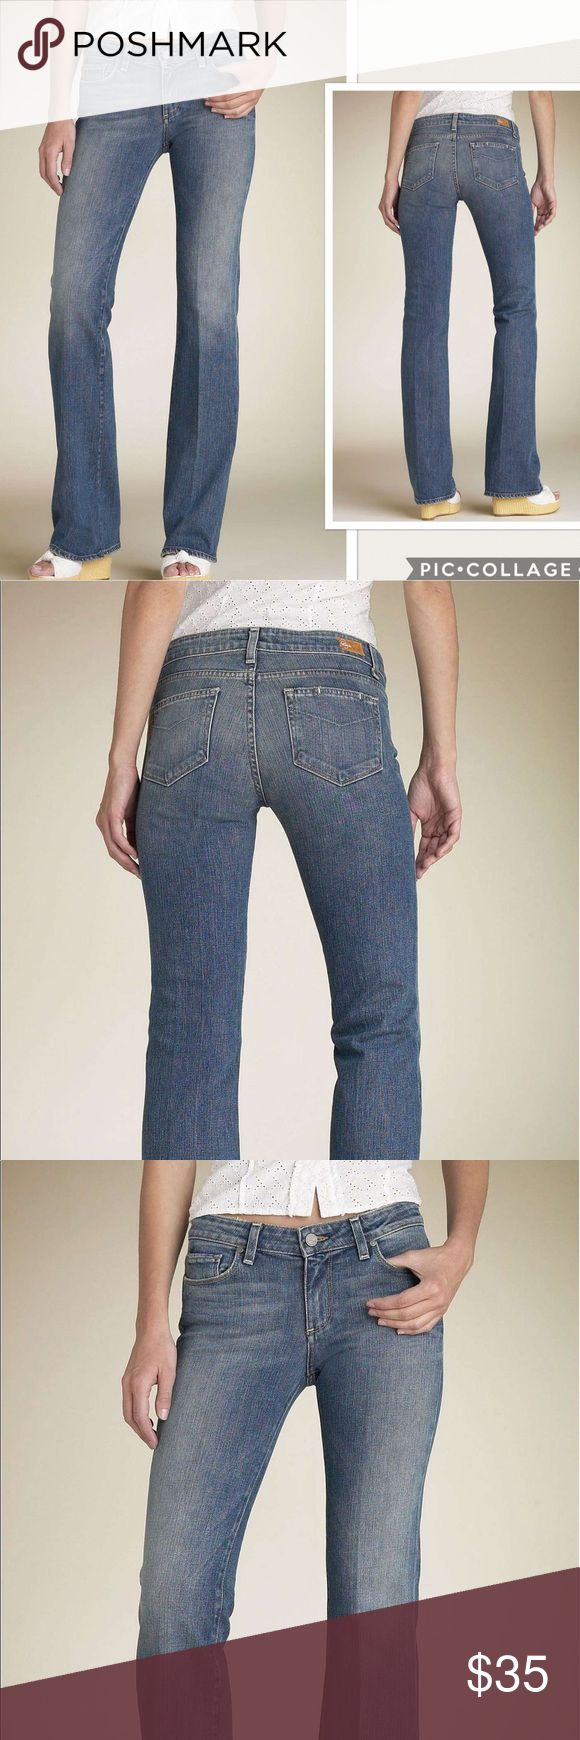 """NWOT Paige Benedict Canyon Boot Cut Jeans Slimmed-down boot-cut silhouette in a nice medium-blue wash, lighter at the front thighs and hips. Floral-printed fabric lines the waistband, and a single line of stitching runs across the back pockets. Zip fly with button closure. Five-pocket style. Logo patch at back waistband. Waist 31""""  Approx. inseam: 34"""". Approx. rise: front 8""""; back 12 1/2"""". Cotton/spandex or cotton/polyester; machine wash. For the best fit, machine wash and dry before…"""